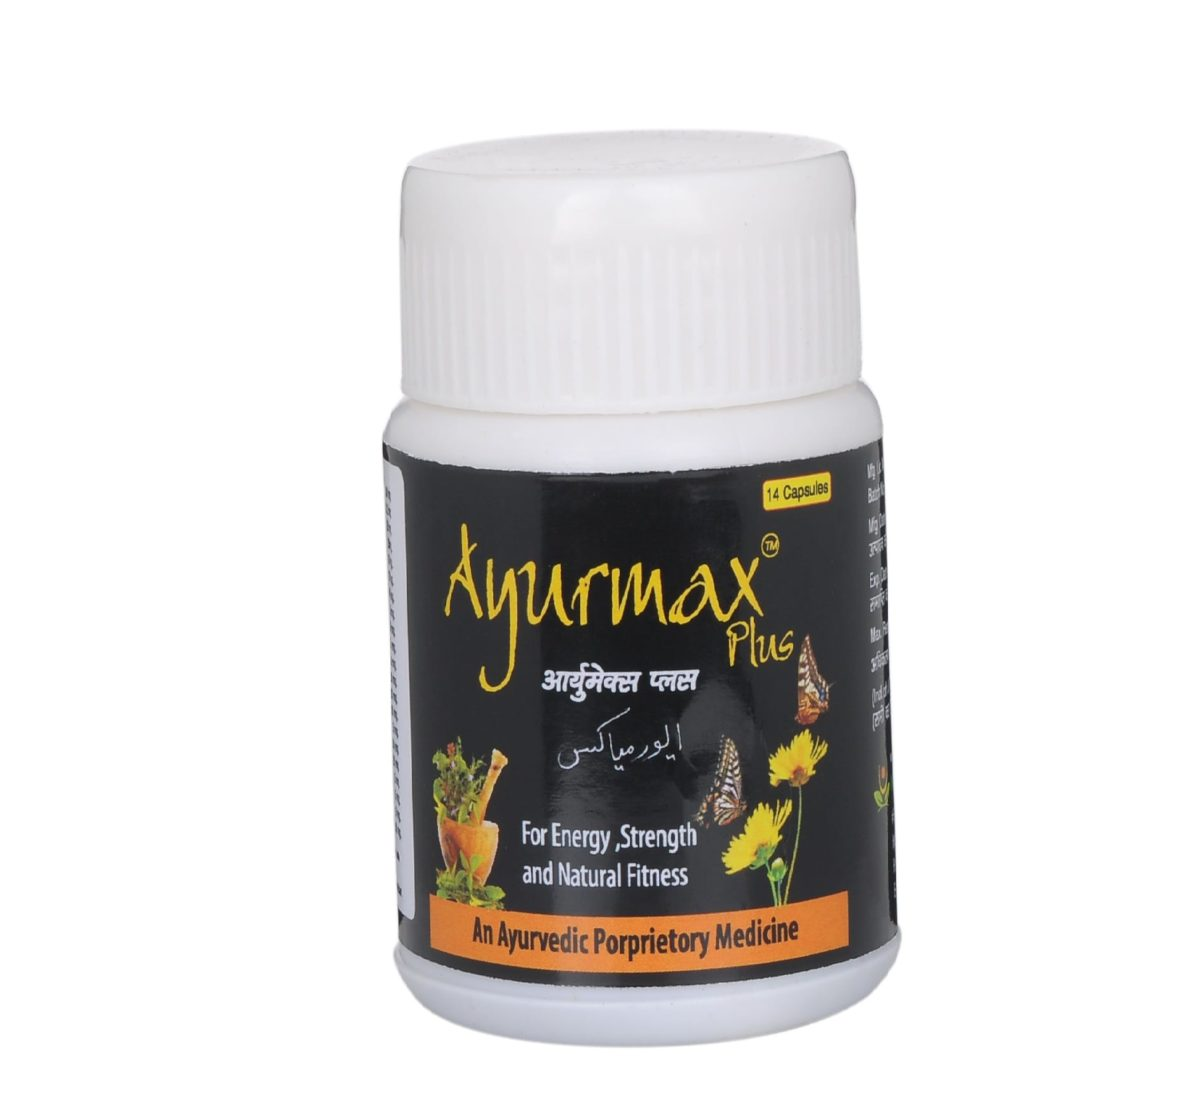 ayurmax plus for youthfull energy (3)